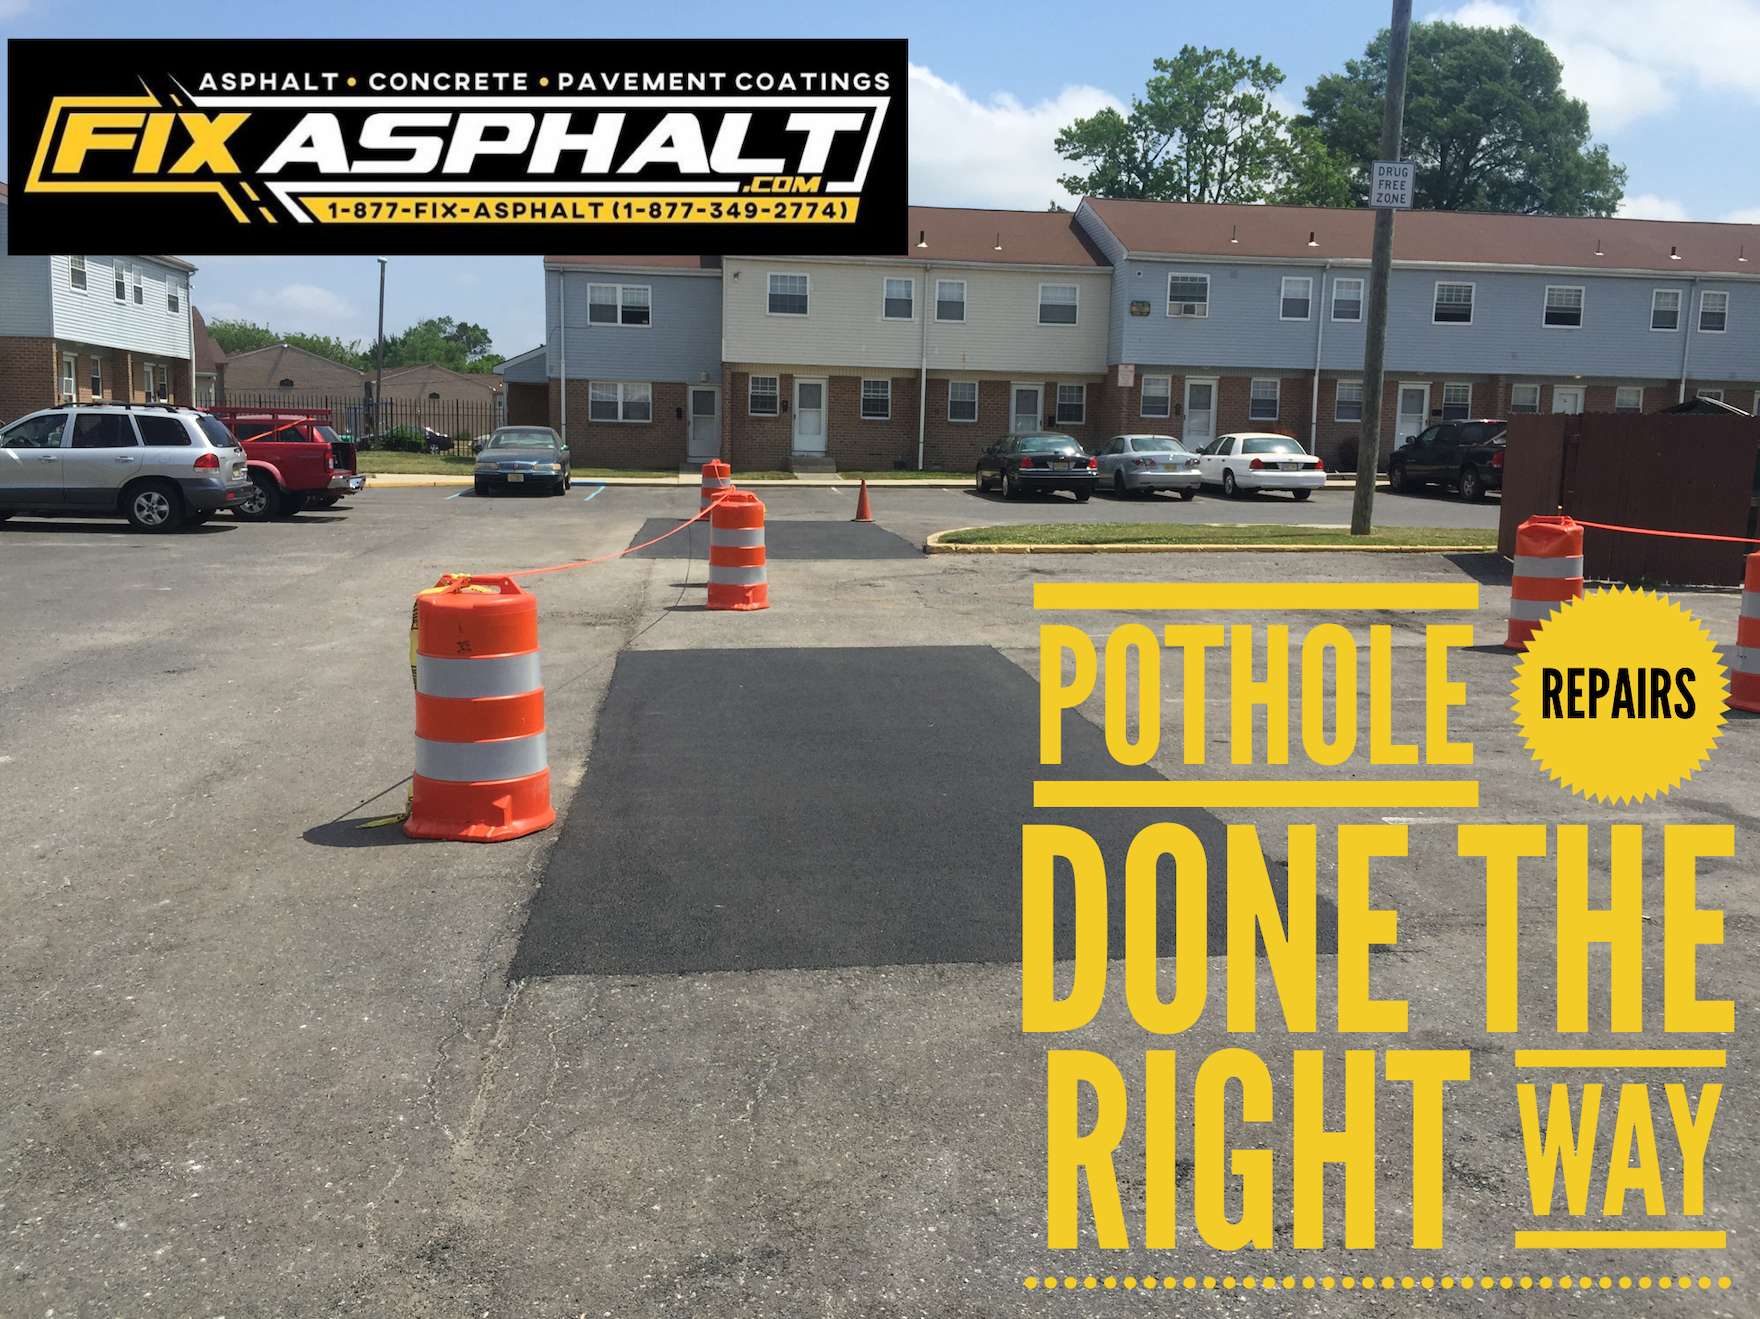 Pothole Repair Done Right